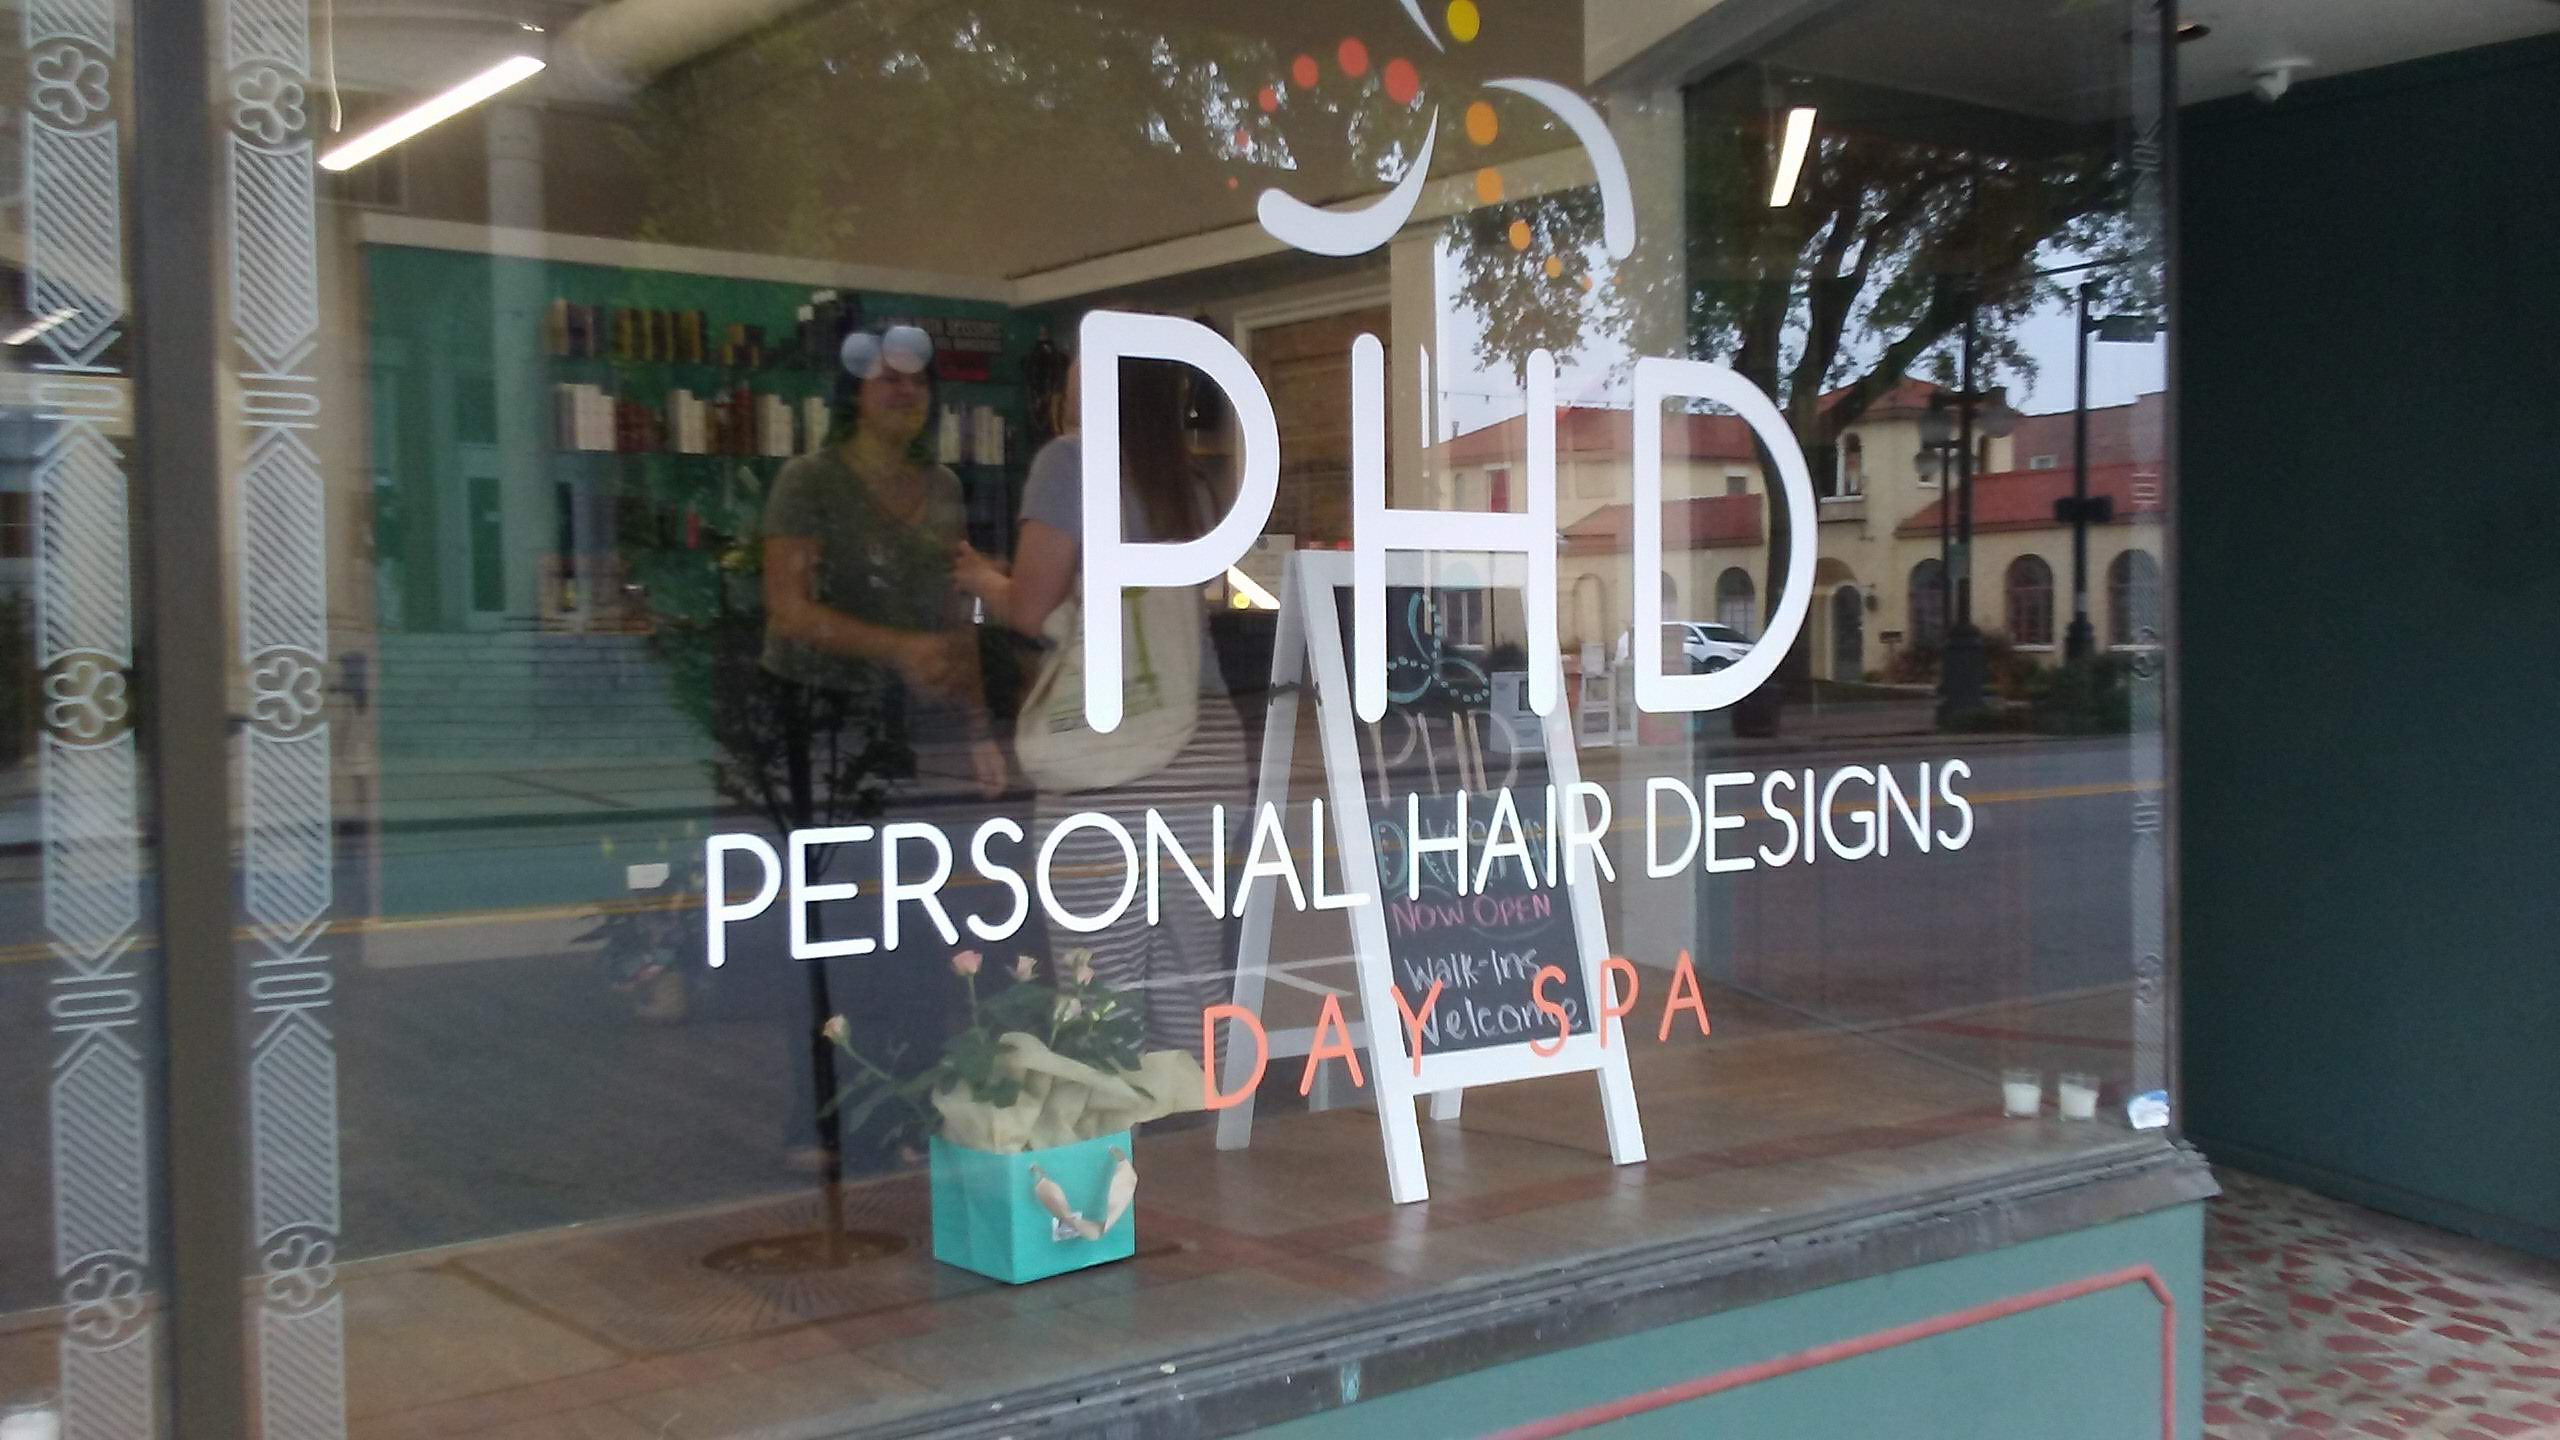 Personal Hair Design Window Graphics